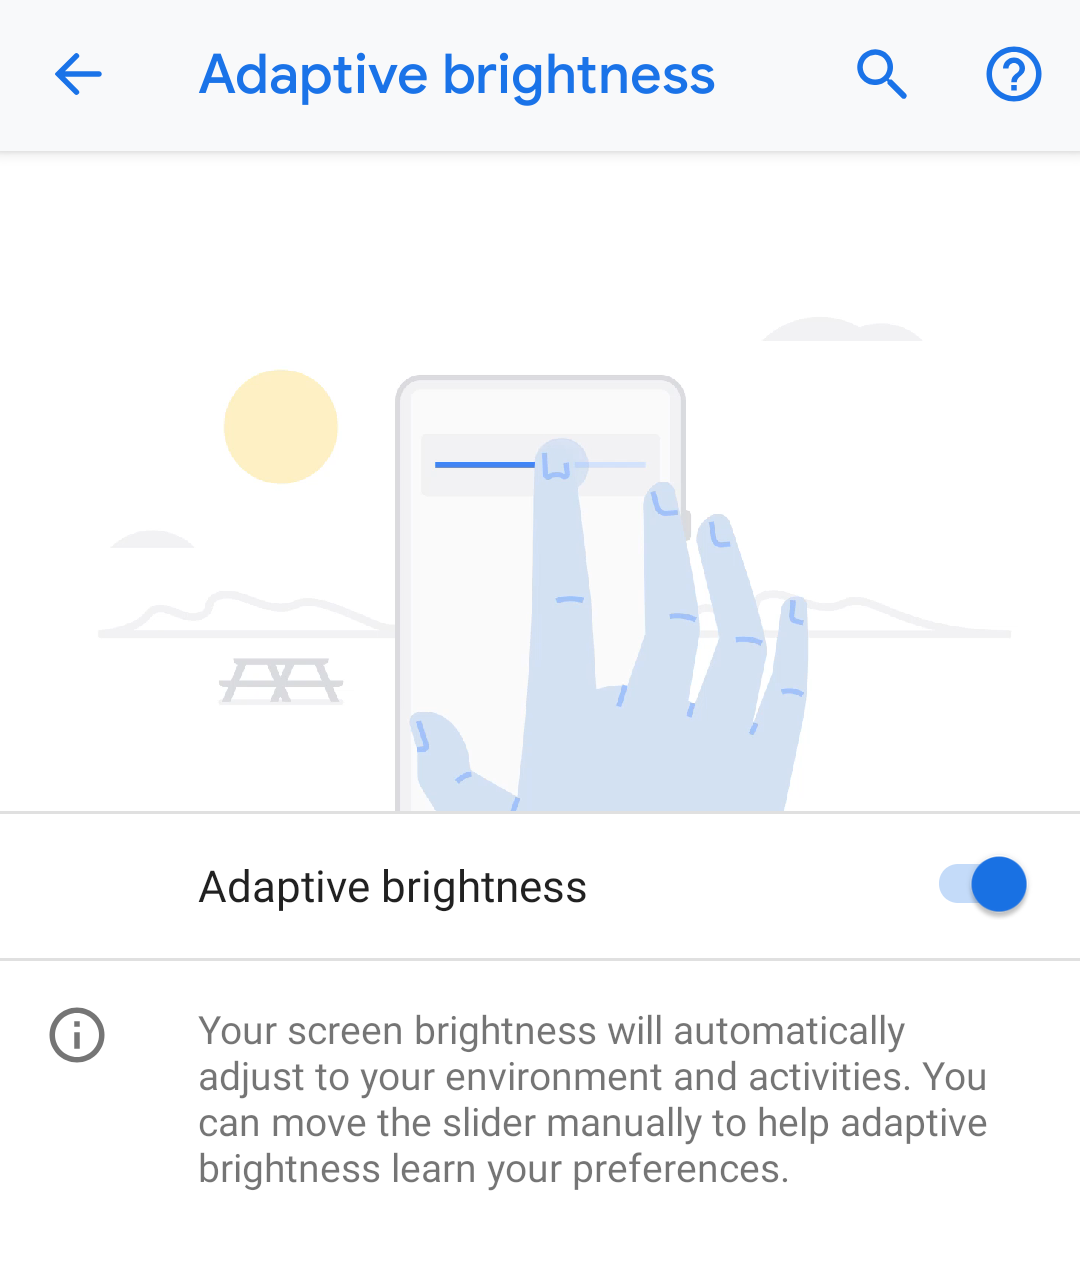 Android Developers Blog: Getting screen brightness right for every user